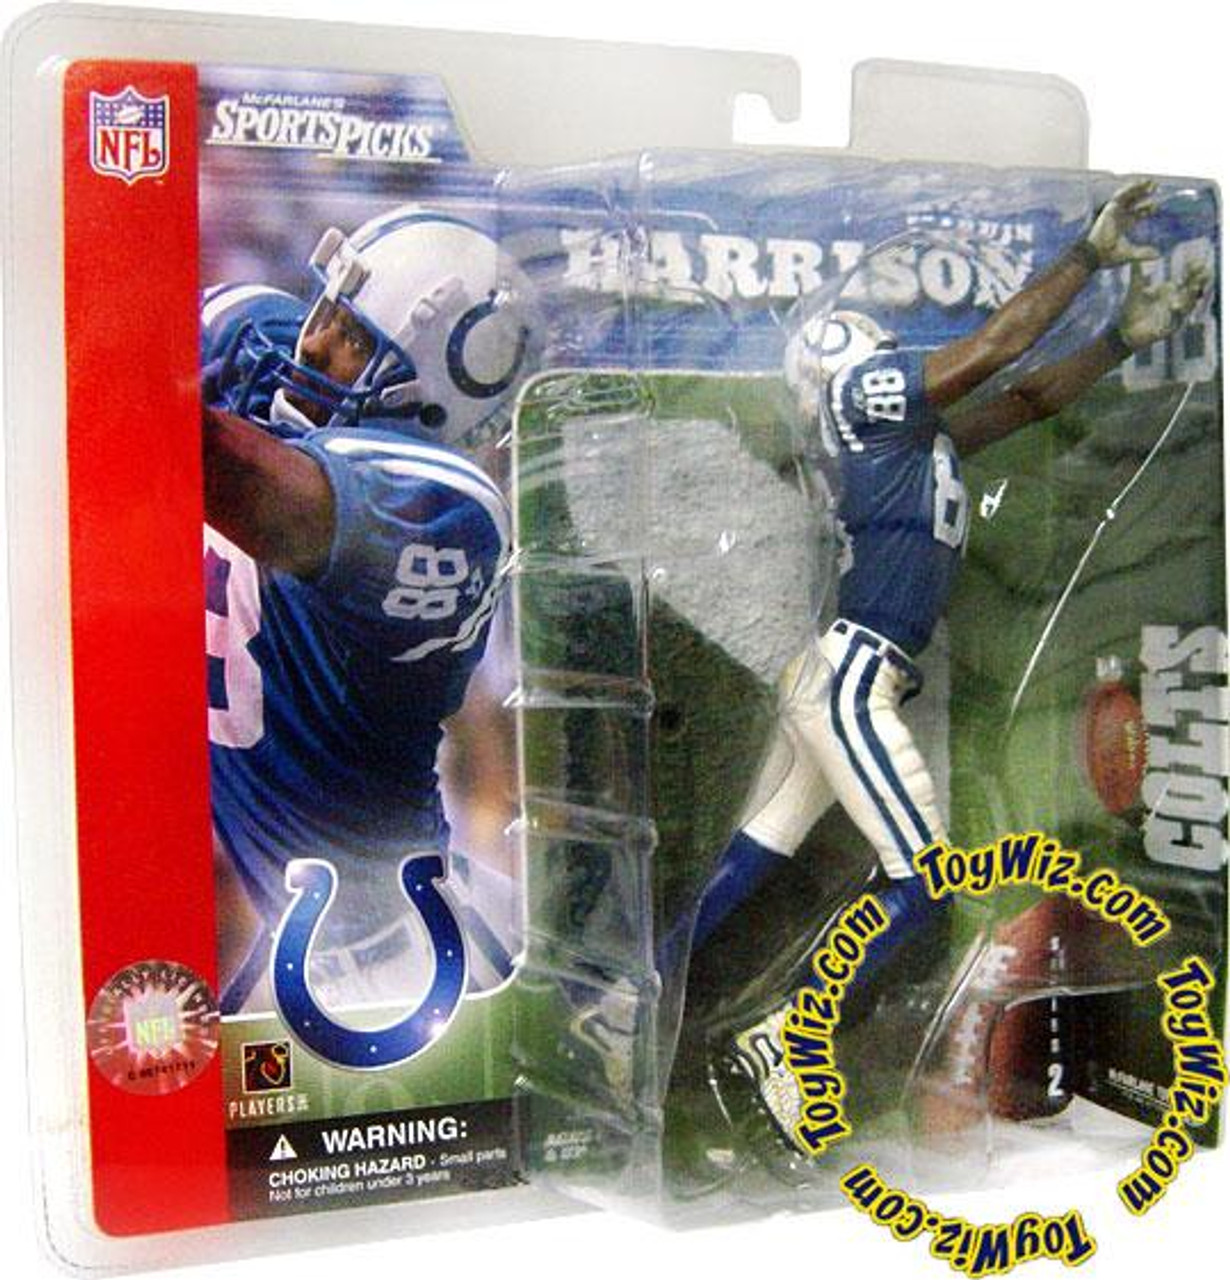 McFarlane Toys NFL Indianapolis Colts Sports Picks Series 2 Marvin Harrison Action Figure [Blue Jersey]